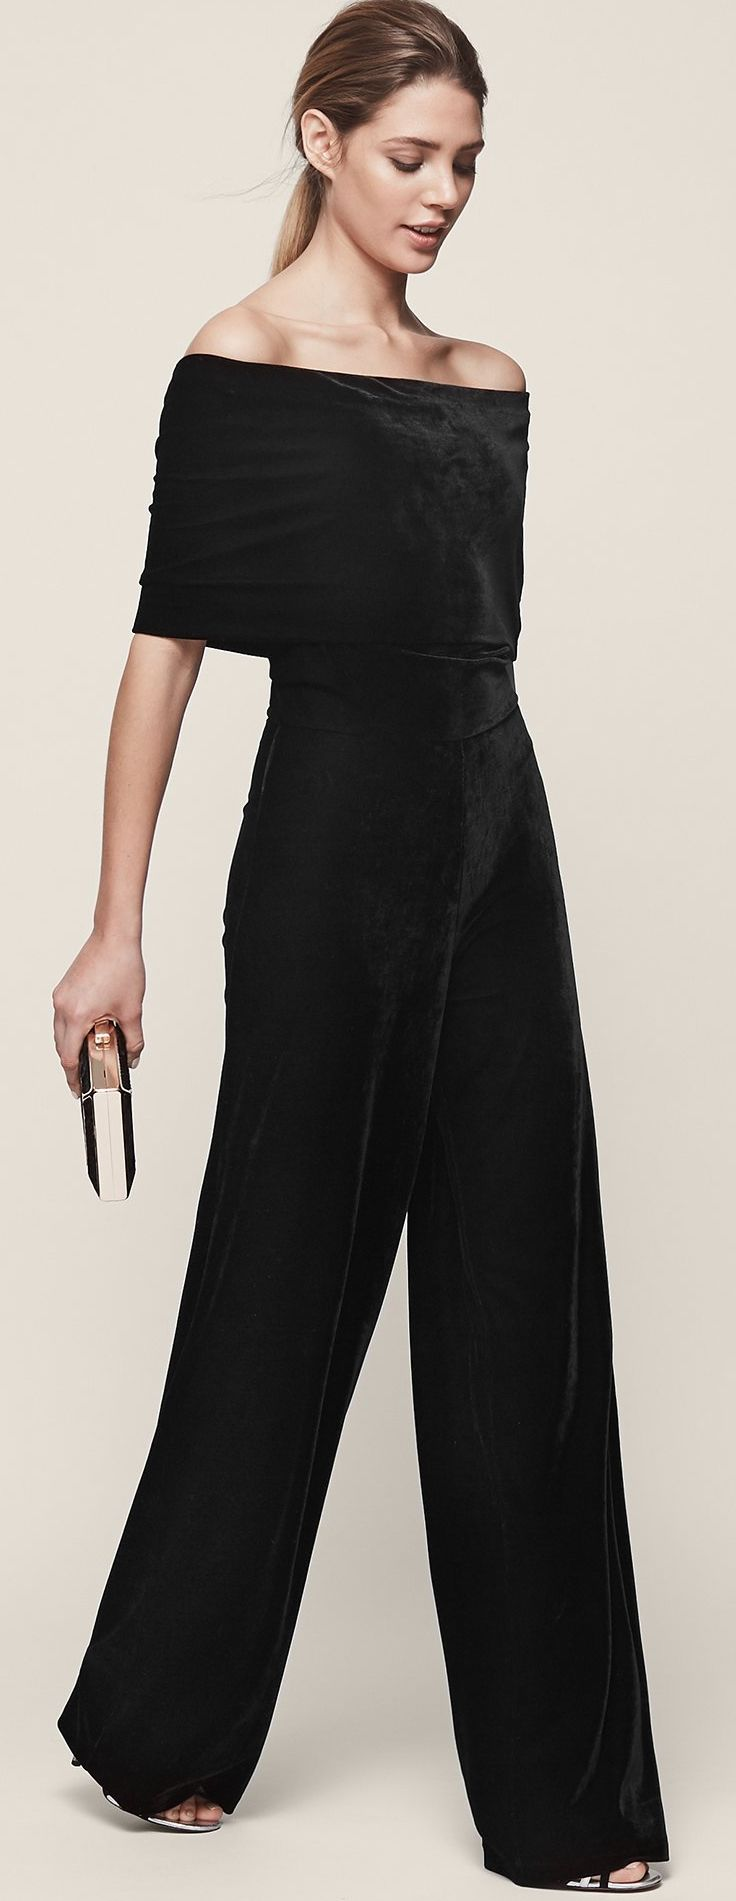 Velvet Off Shoulder Jumpsuit 17500 Nothing Says Formal Winter